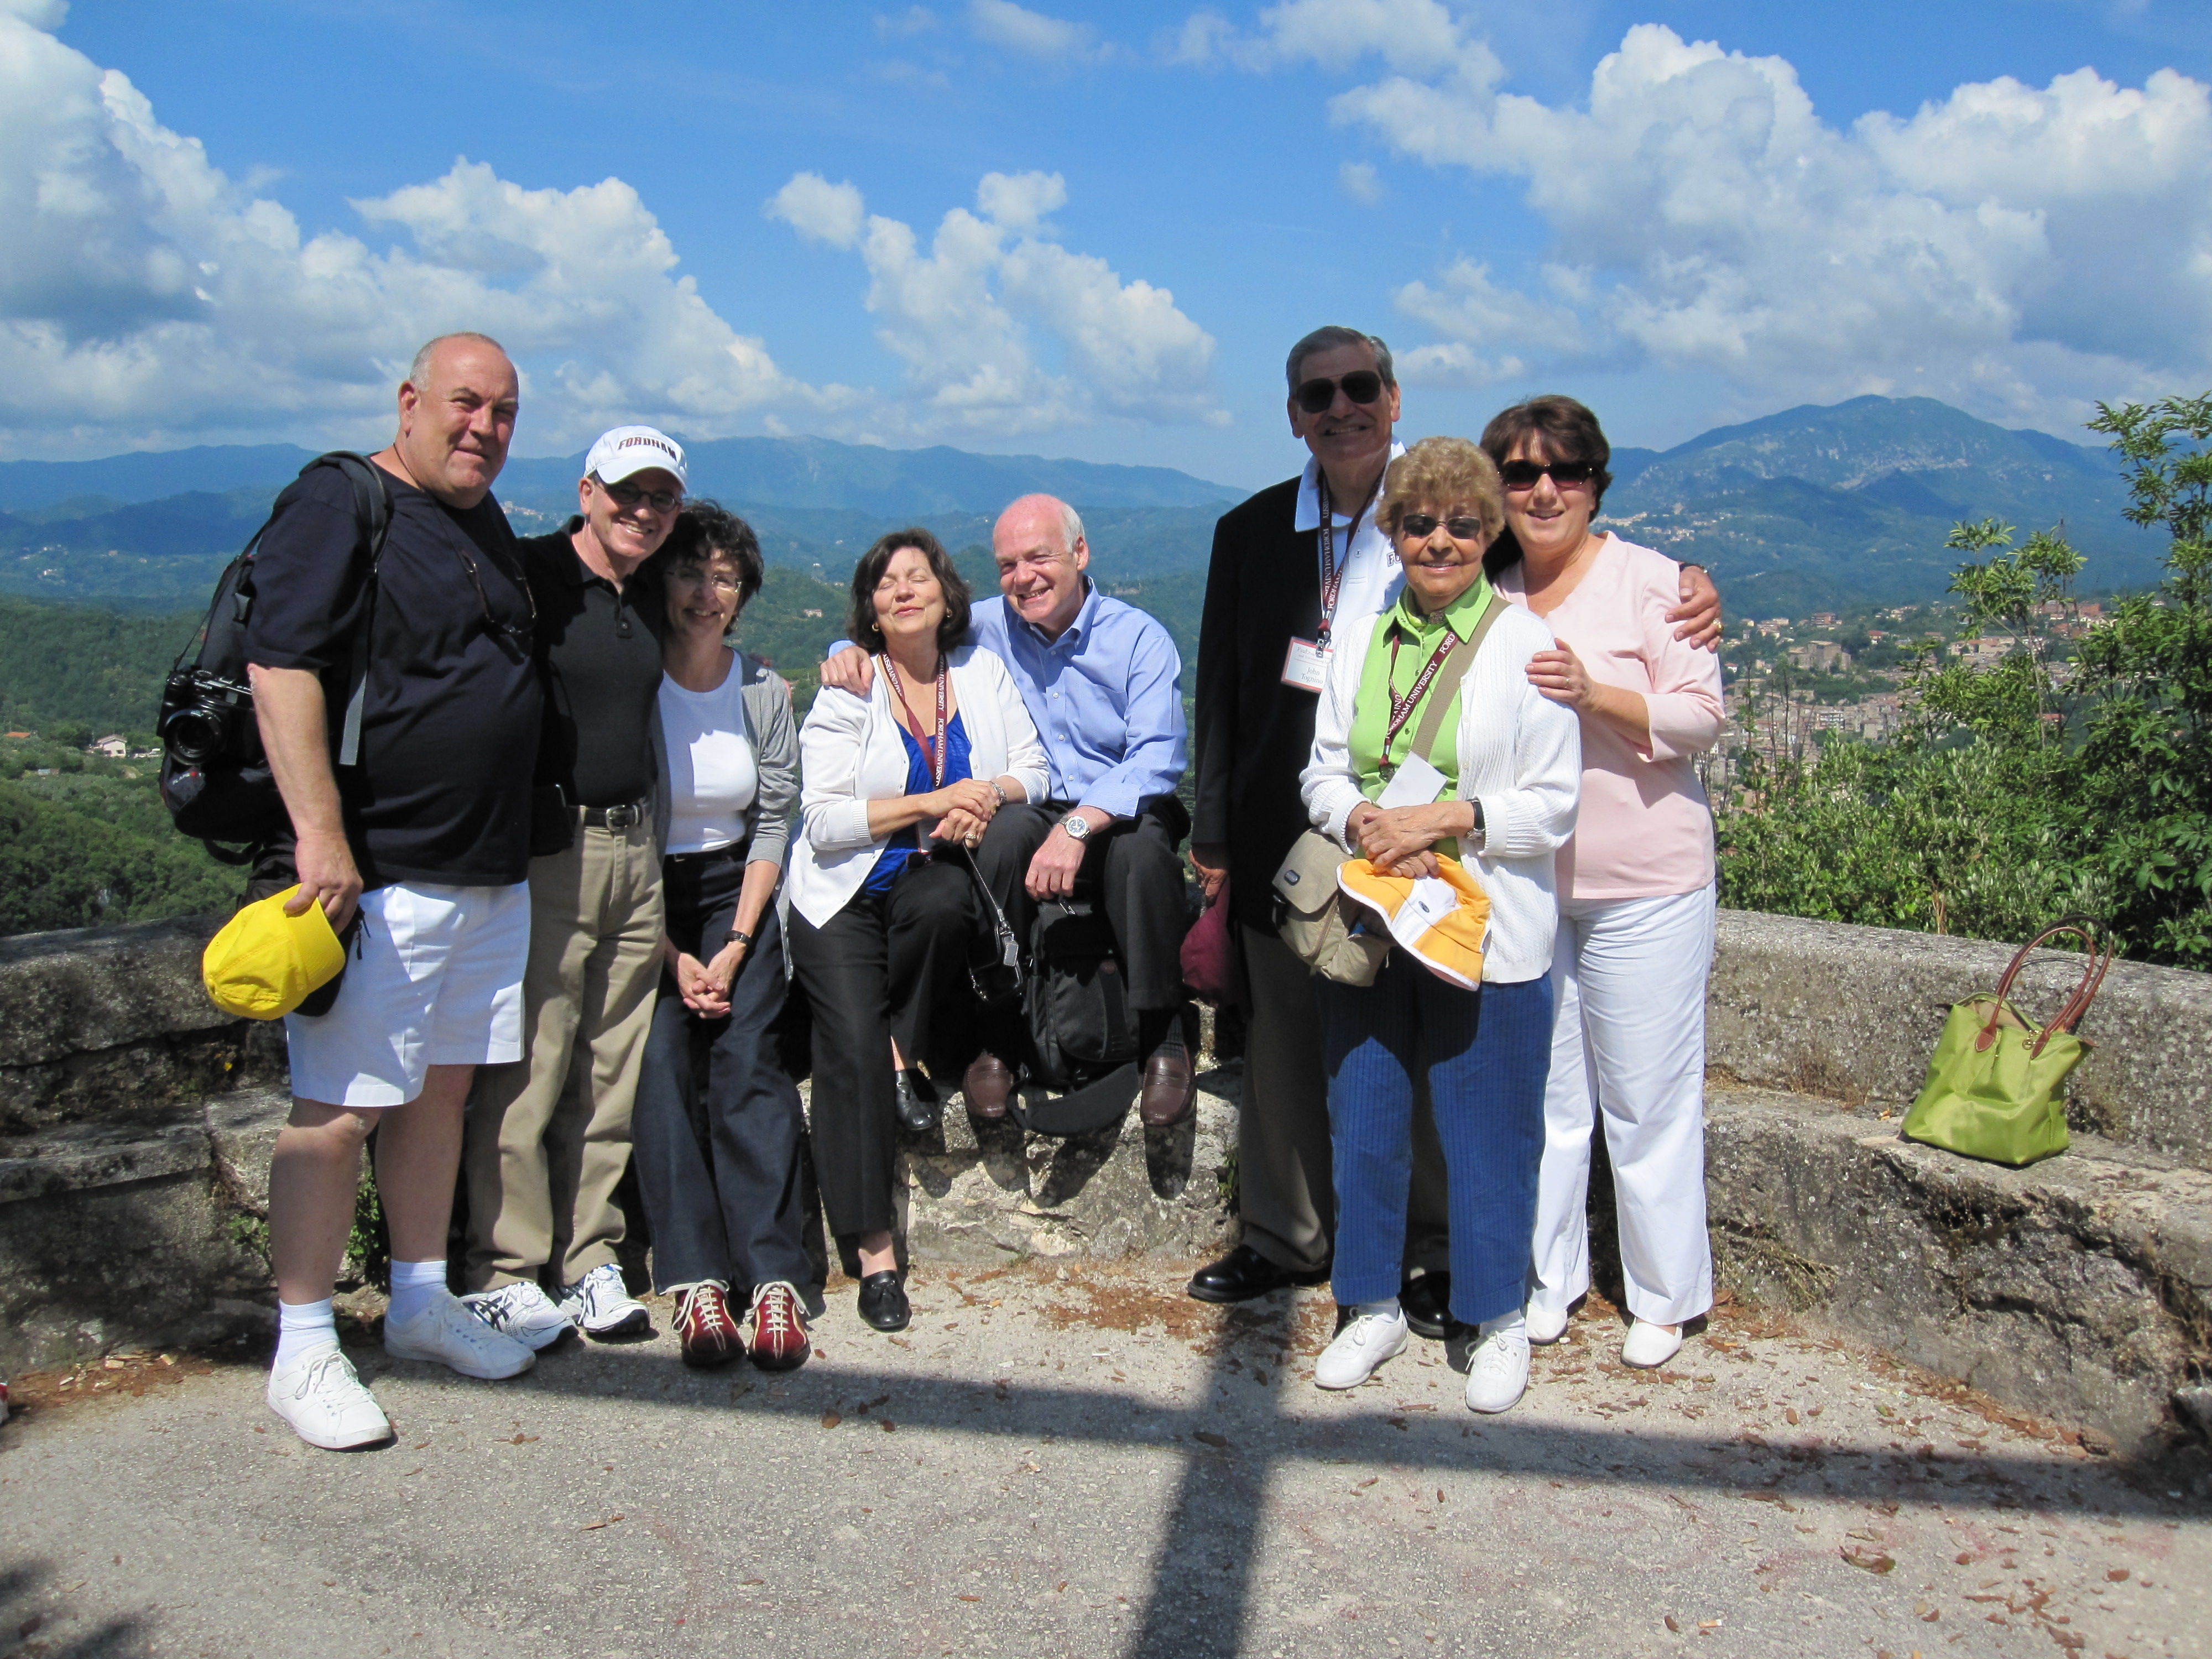 The Togninos on a 2009 Fordham trustees trip to Italy, with a group, atop a mountain